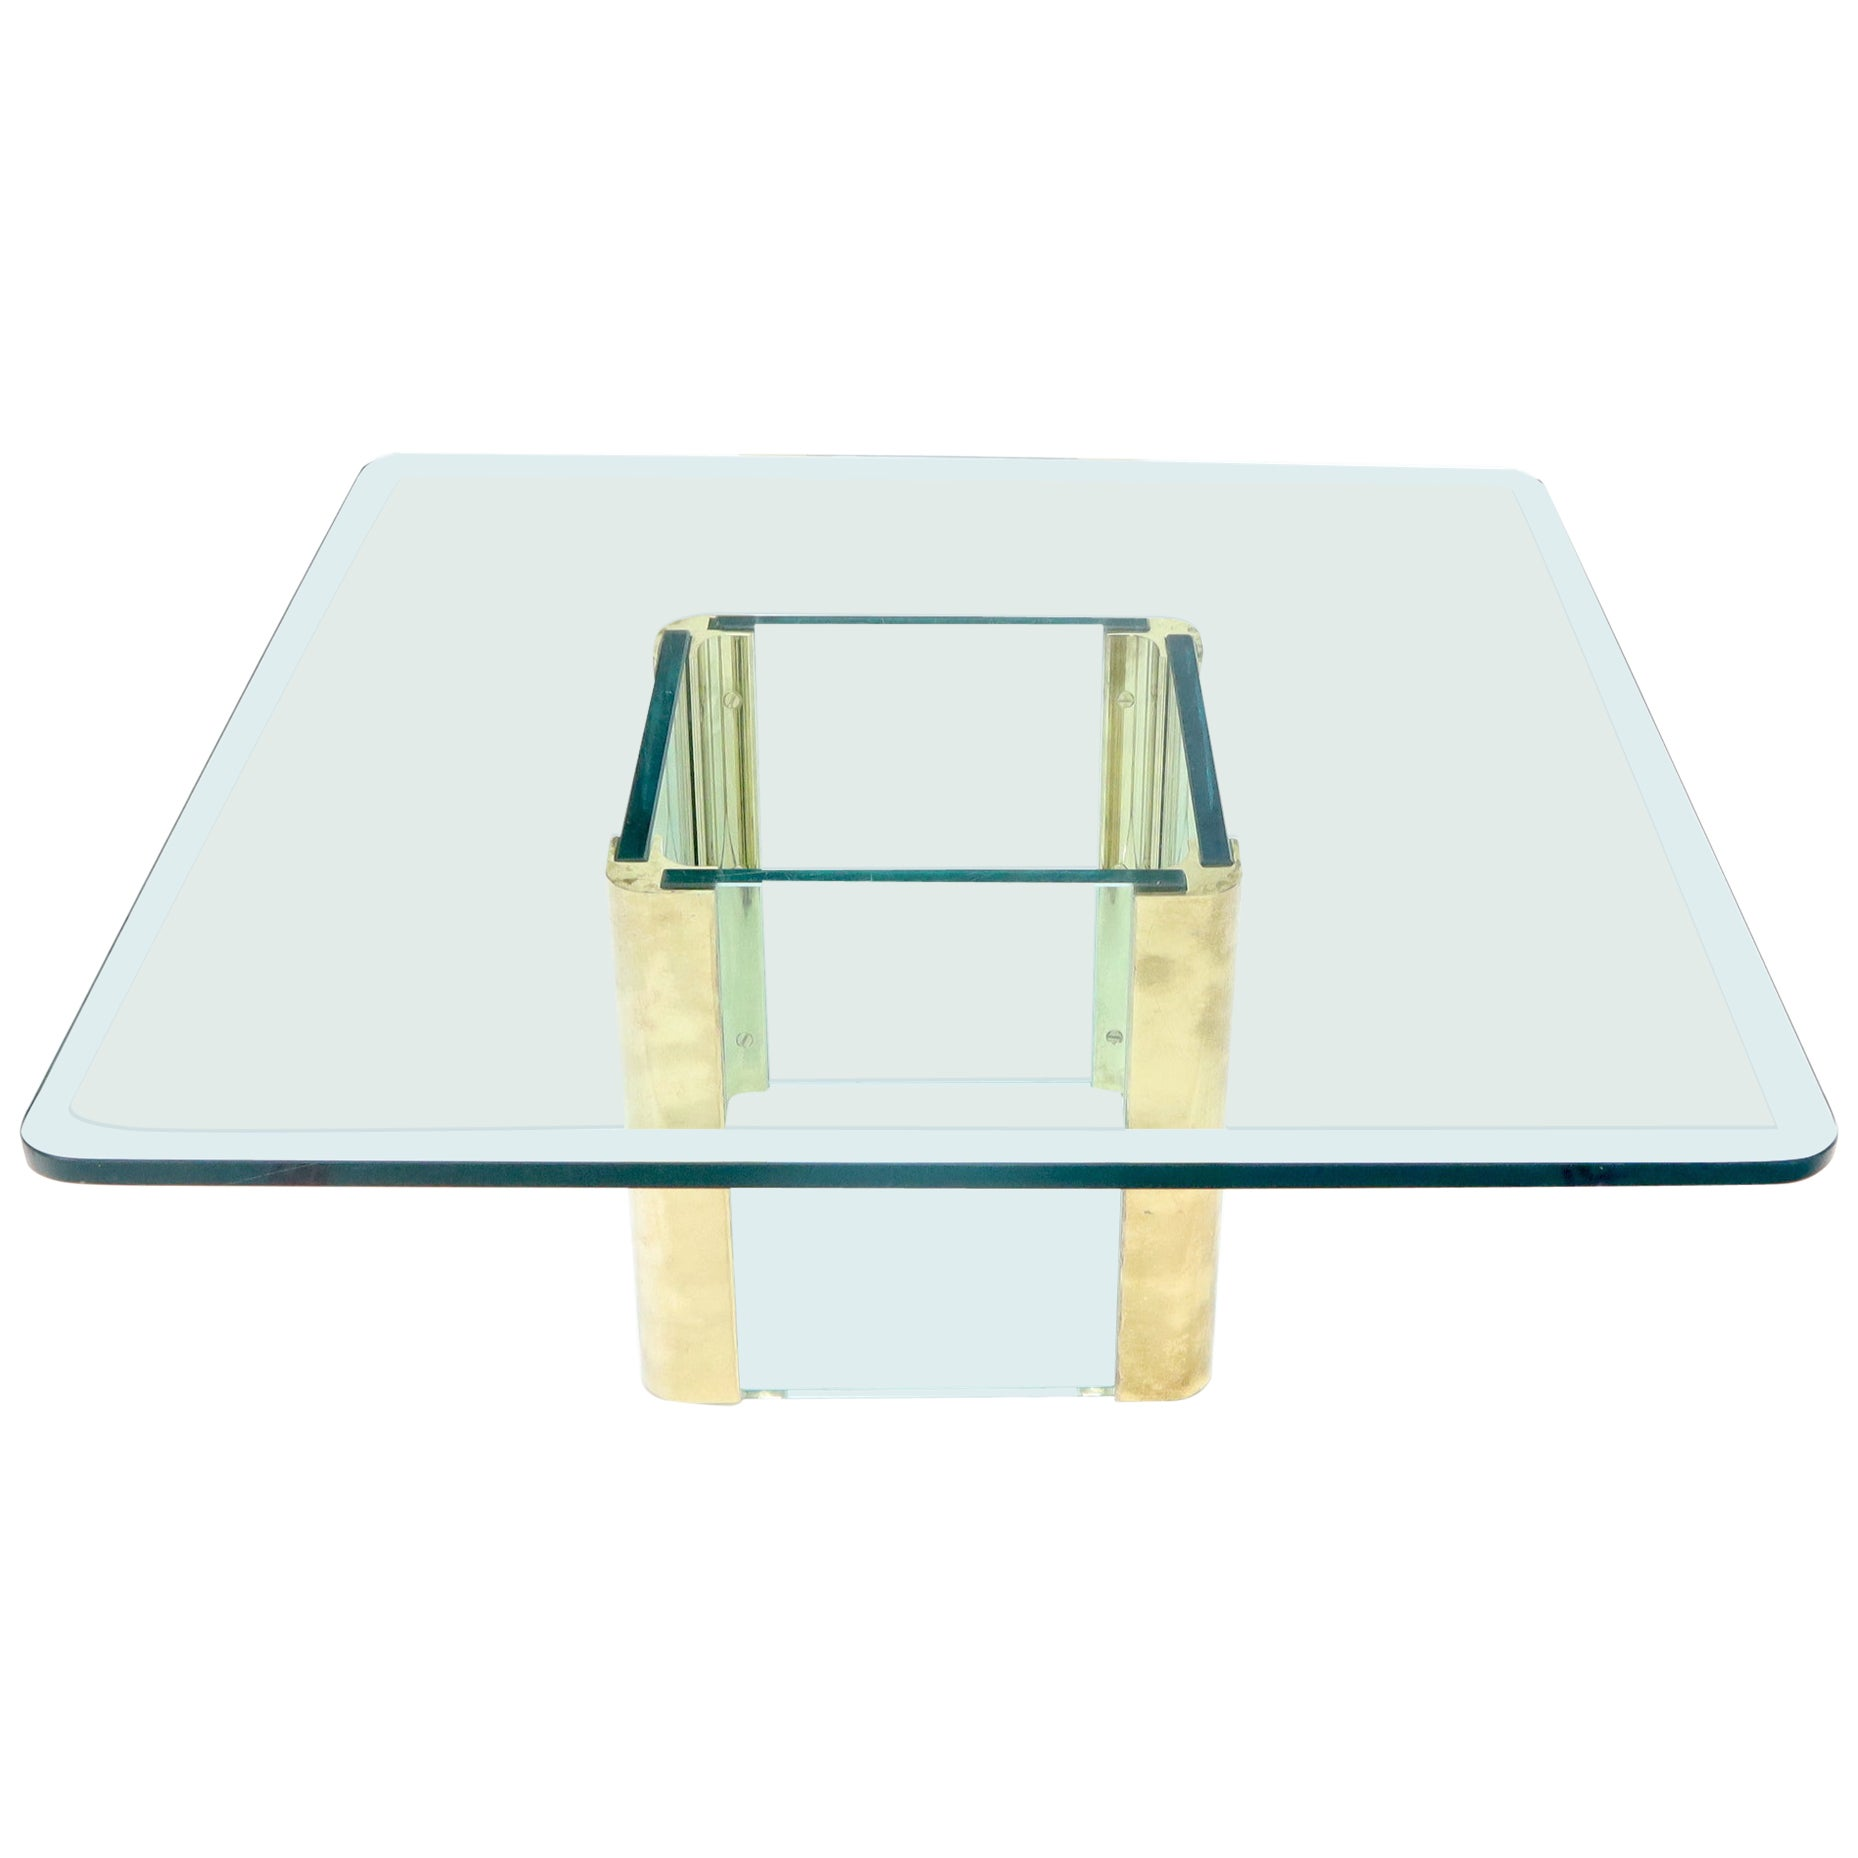 Mid-Century Modern Square Glass and Brass Coffee Table